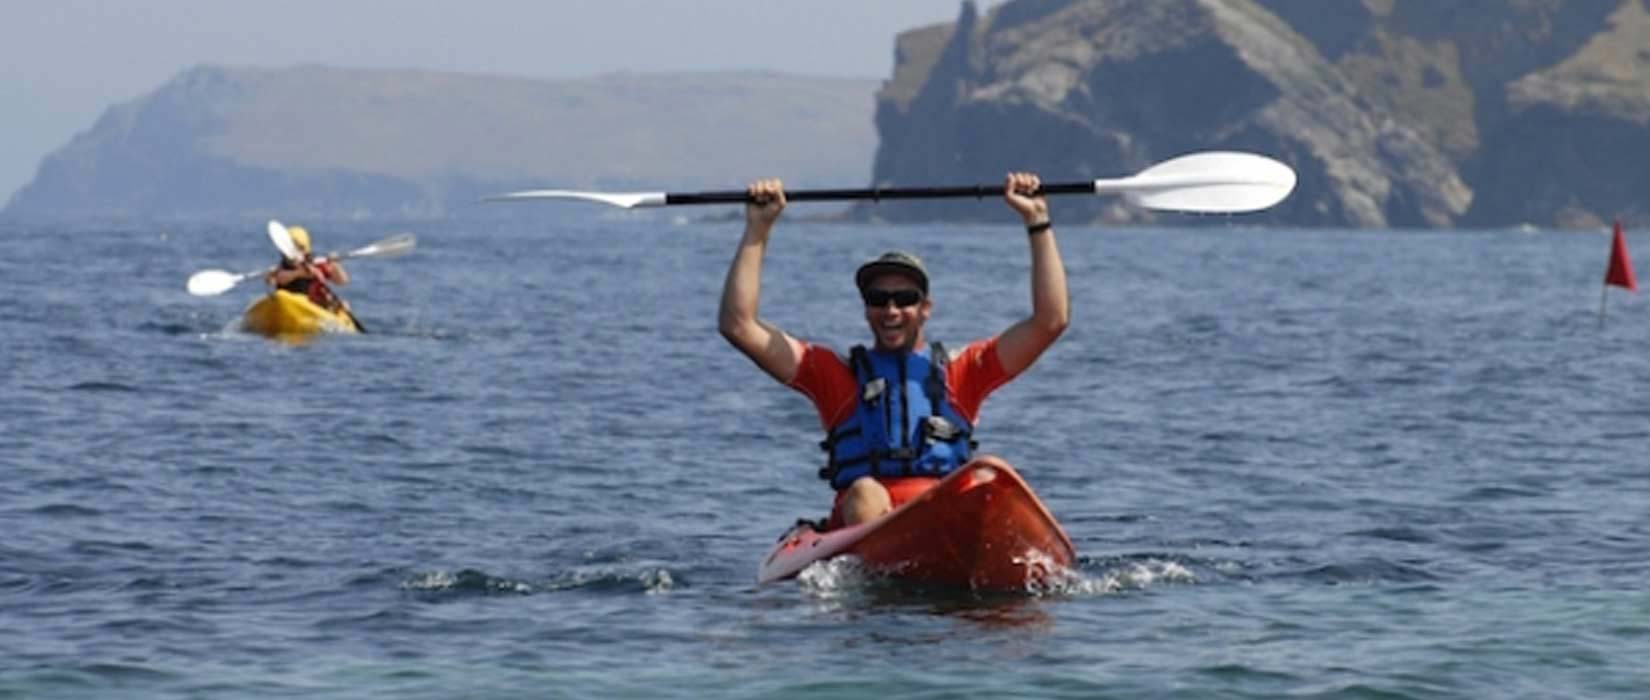 SUP & Kayak Safety Rules at Harlyn Surf School